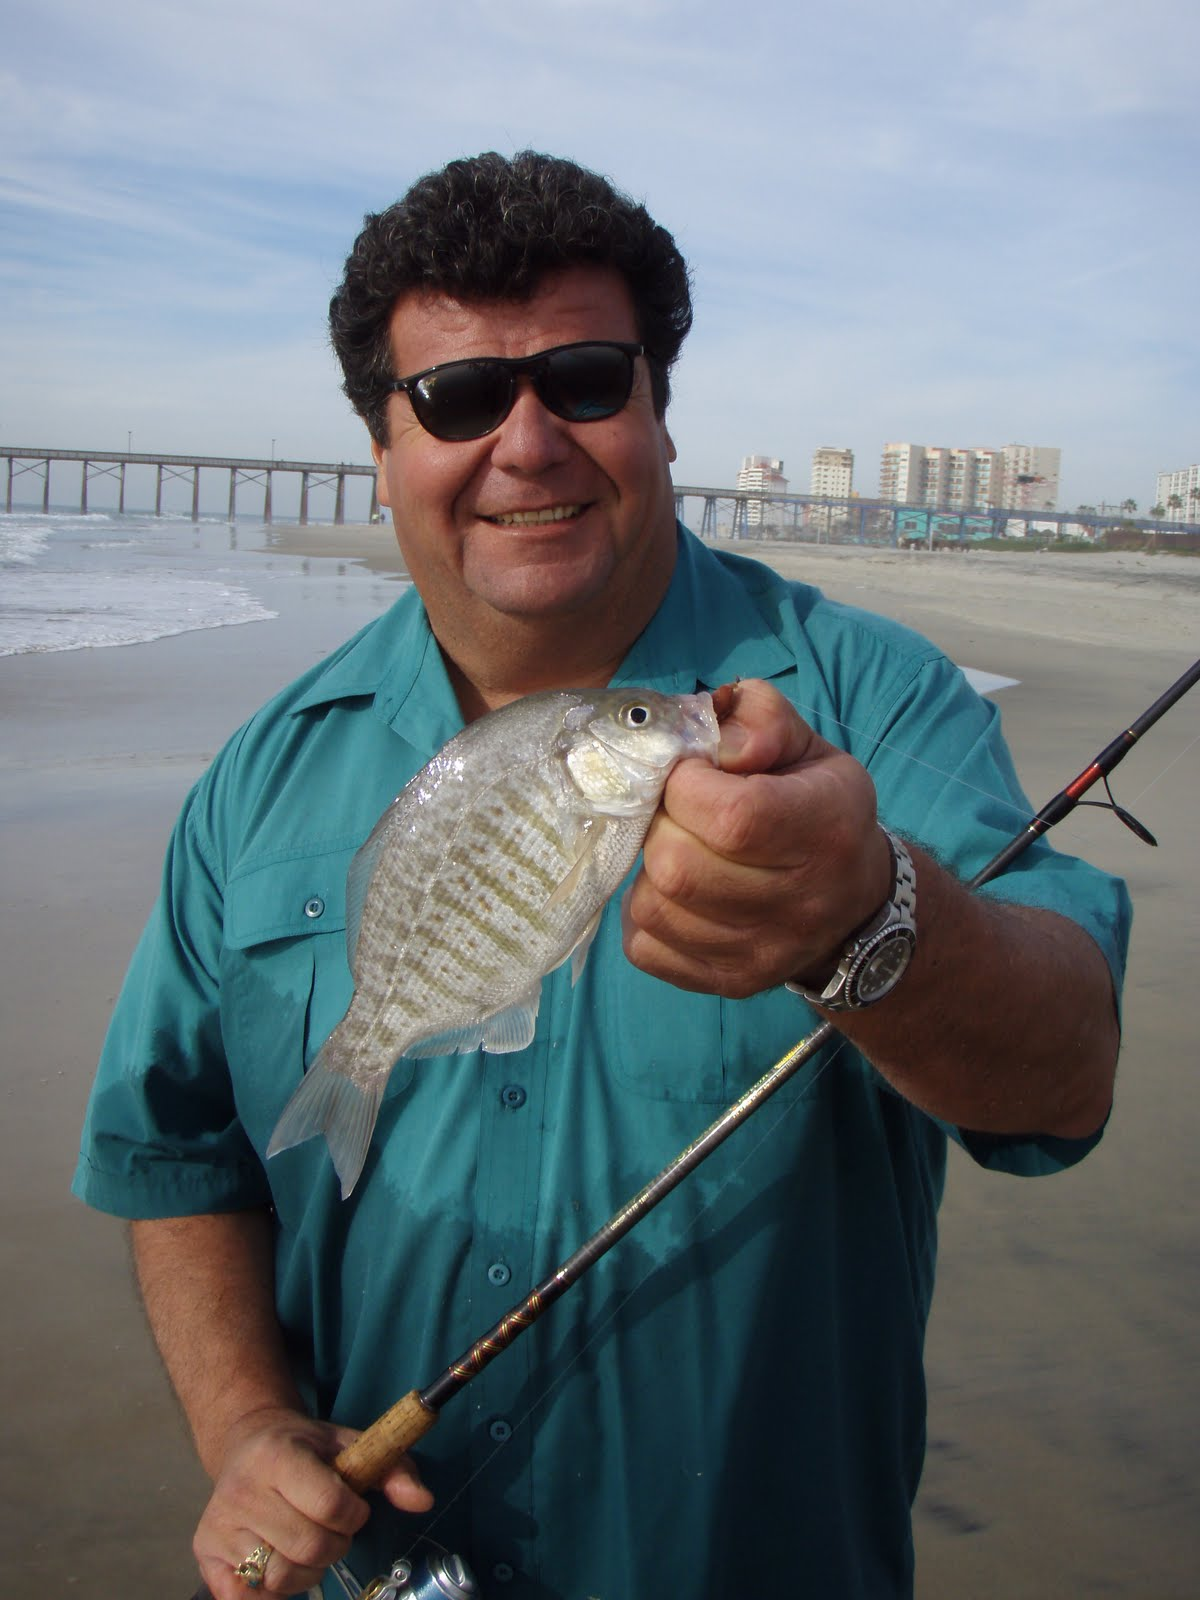 Dan 39 S Journal Surf Fishing Weekend In Rosarito Mexico